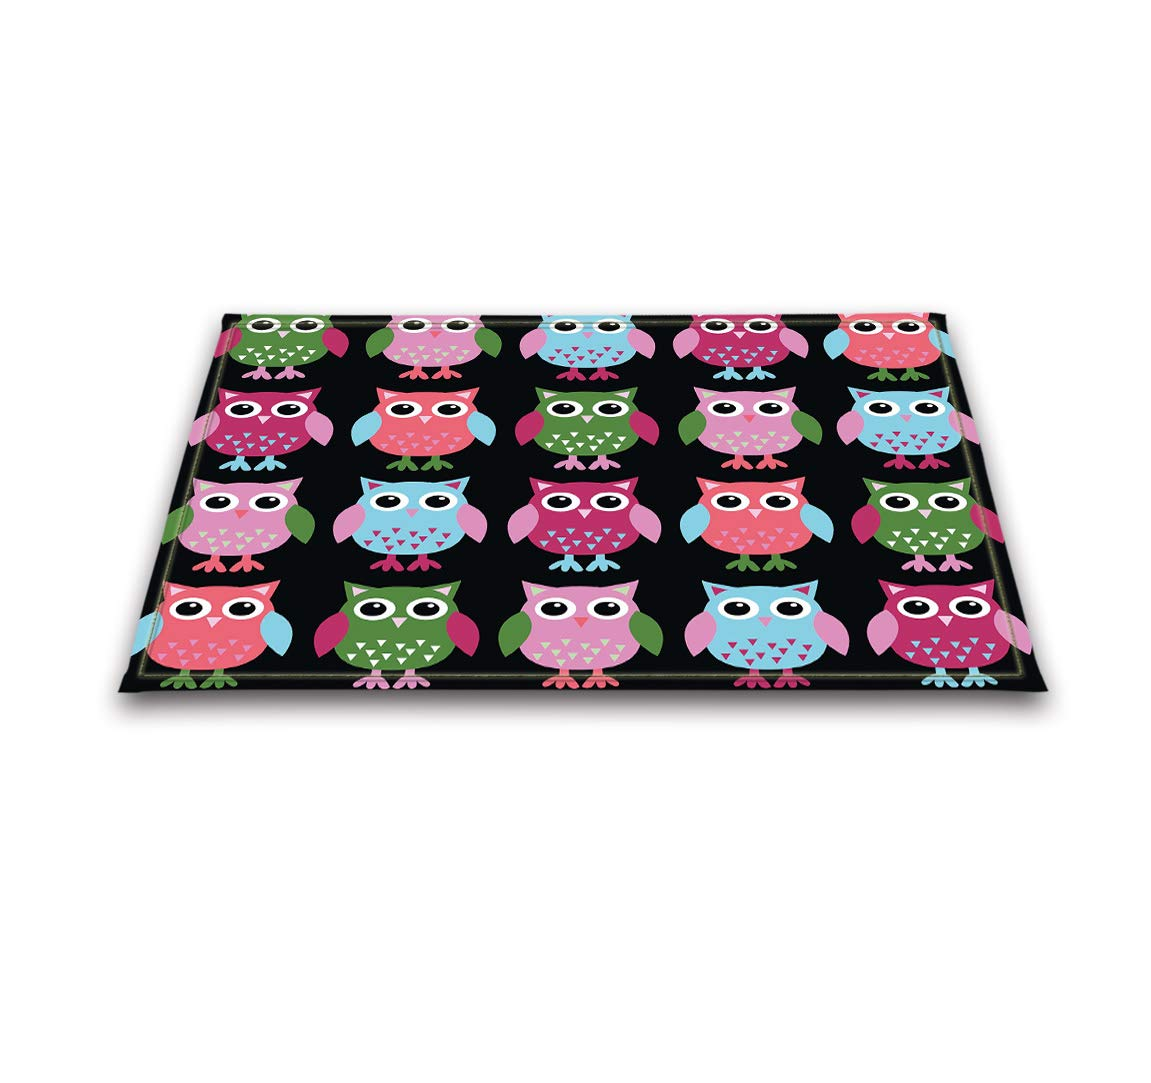 LB Cute Colorful Cartoon Owls Small Shower Rugs for Boys Kids, Safe Non Slip Rubber Backing Comfortable Soft Surface, Animal Theme Clip Art Decor Rug 15 x 23 Inches